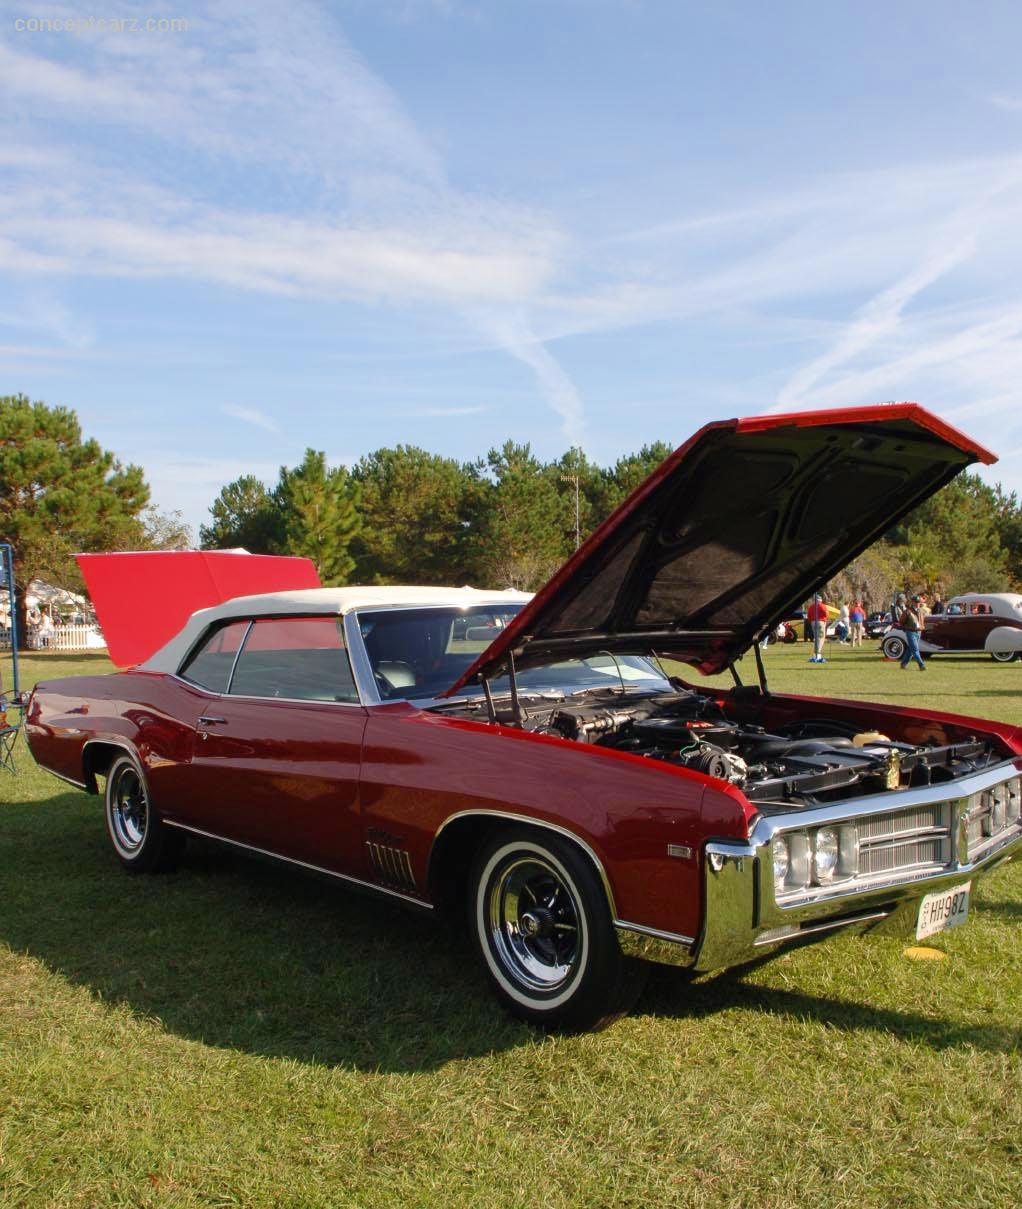 1969 Buick Electra 225 For Sale: 1969 Buick Wildcat Image